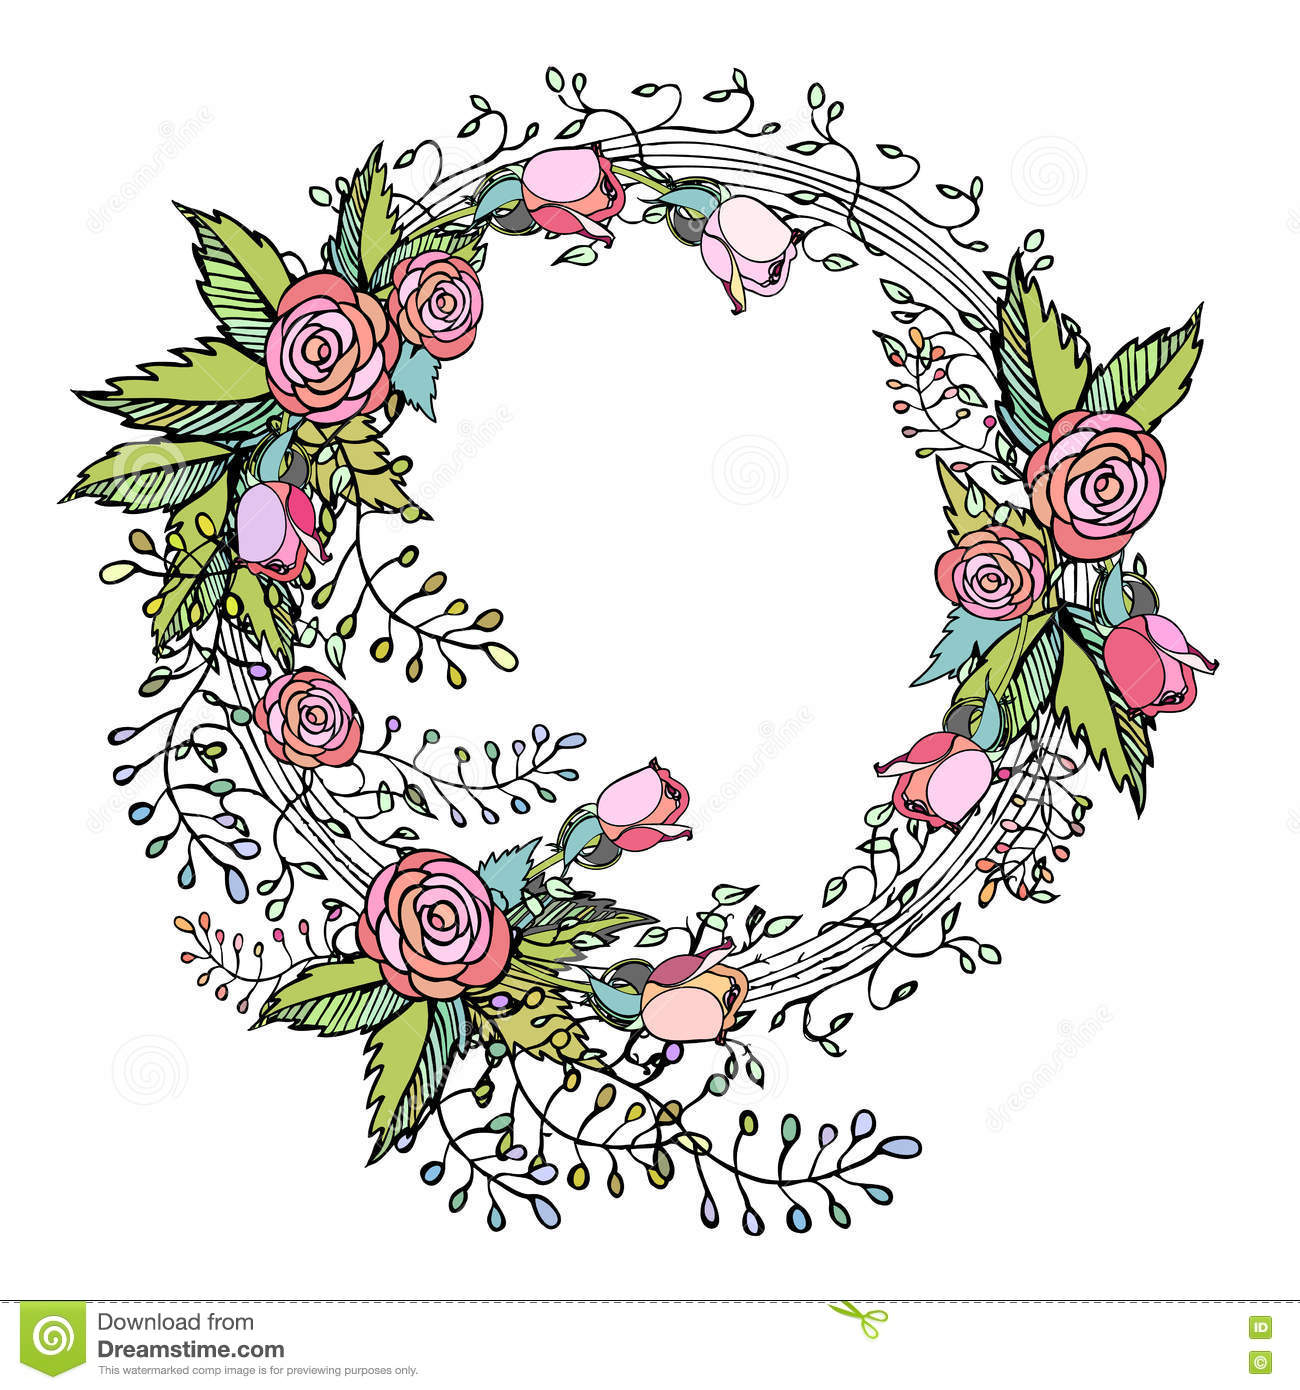 Pink roses on wreath in pretty hand drawn flower arrangement design pink roses on wreath in pretty hand drawn flower arrangement design mightylinksfo